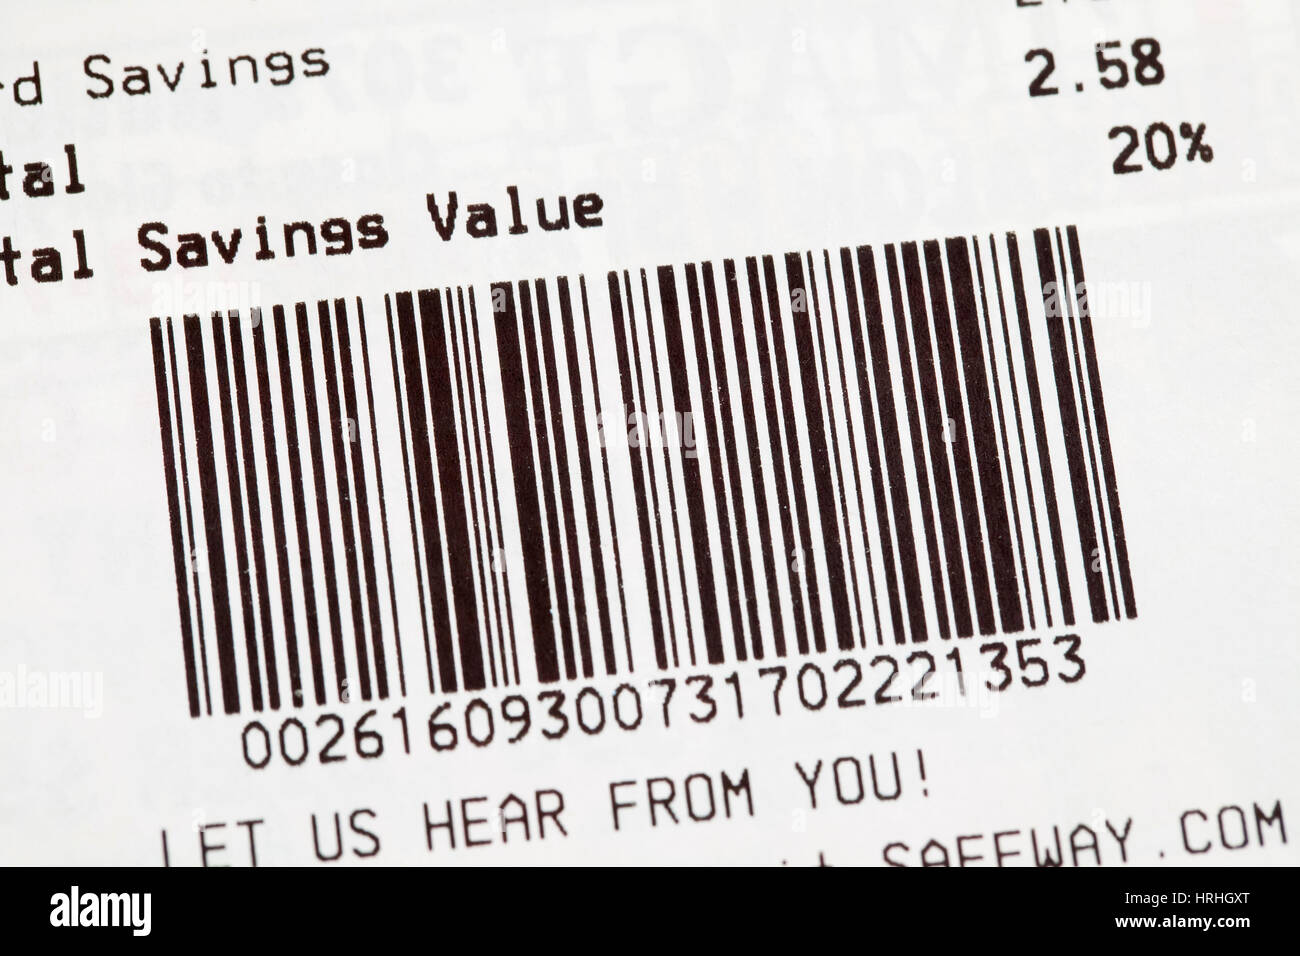 Barcode printed on grocery receipt - USA - Stock Image